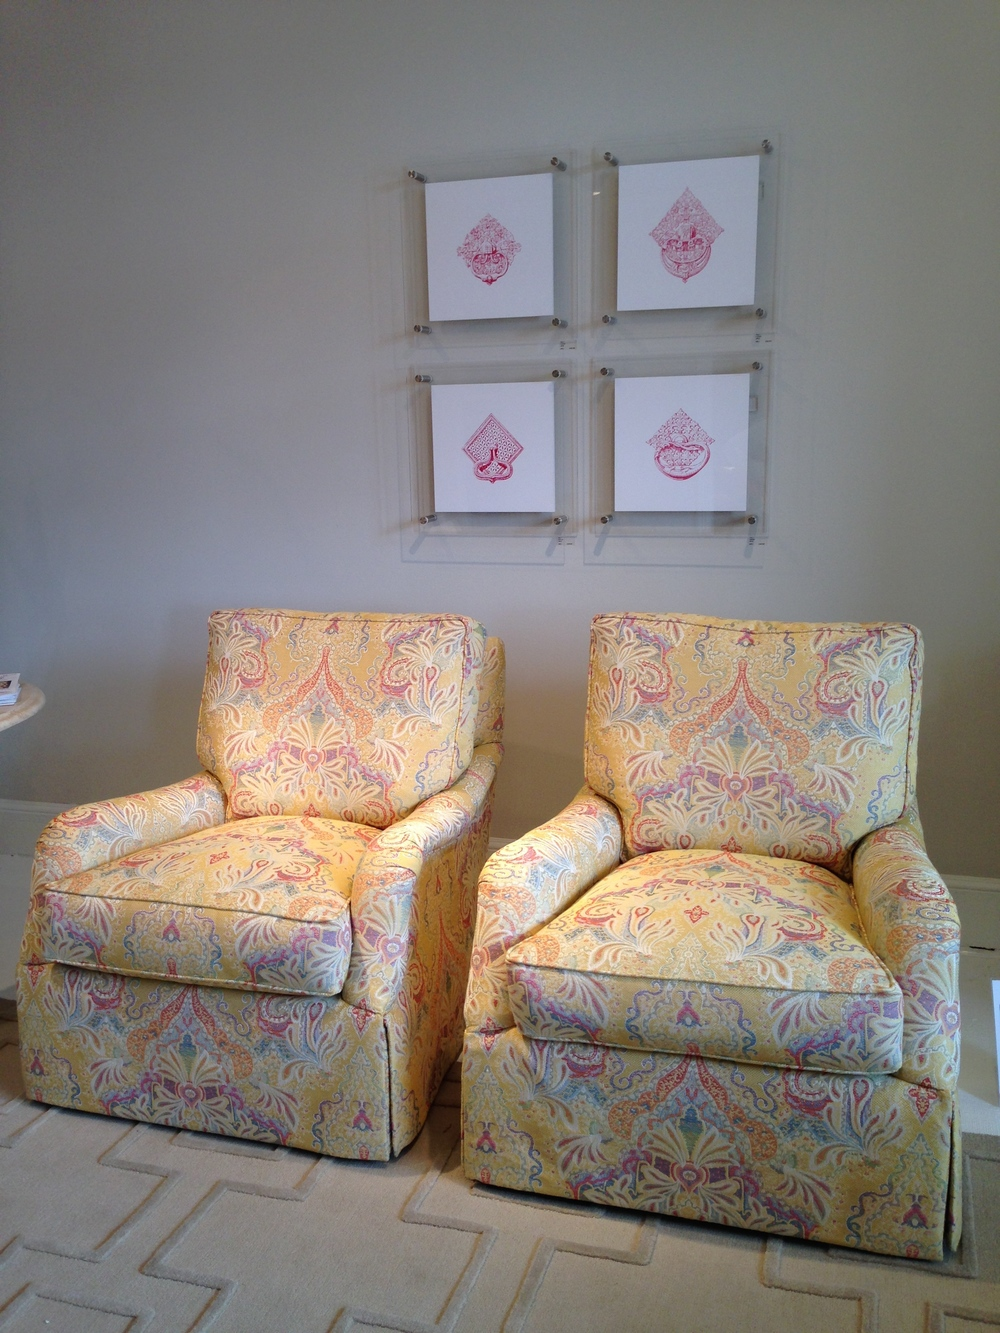 Covered In A Sunny Yellow Almost Neo Batik Print, Matching Reading Chairs  With Tailored Skirts Make The Perfect Bedroom Chair.